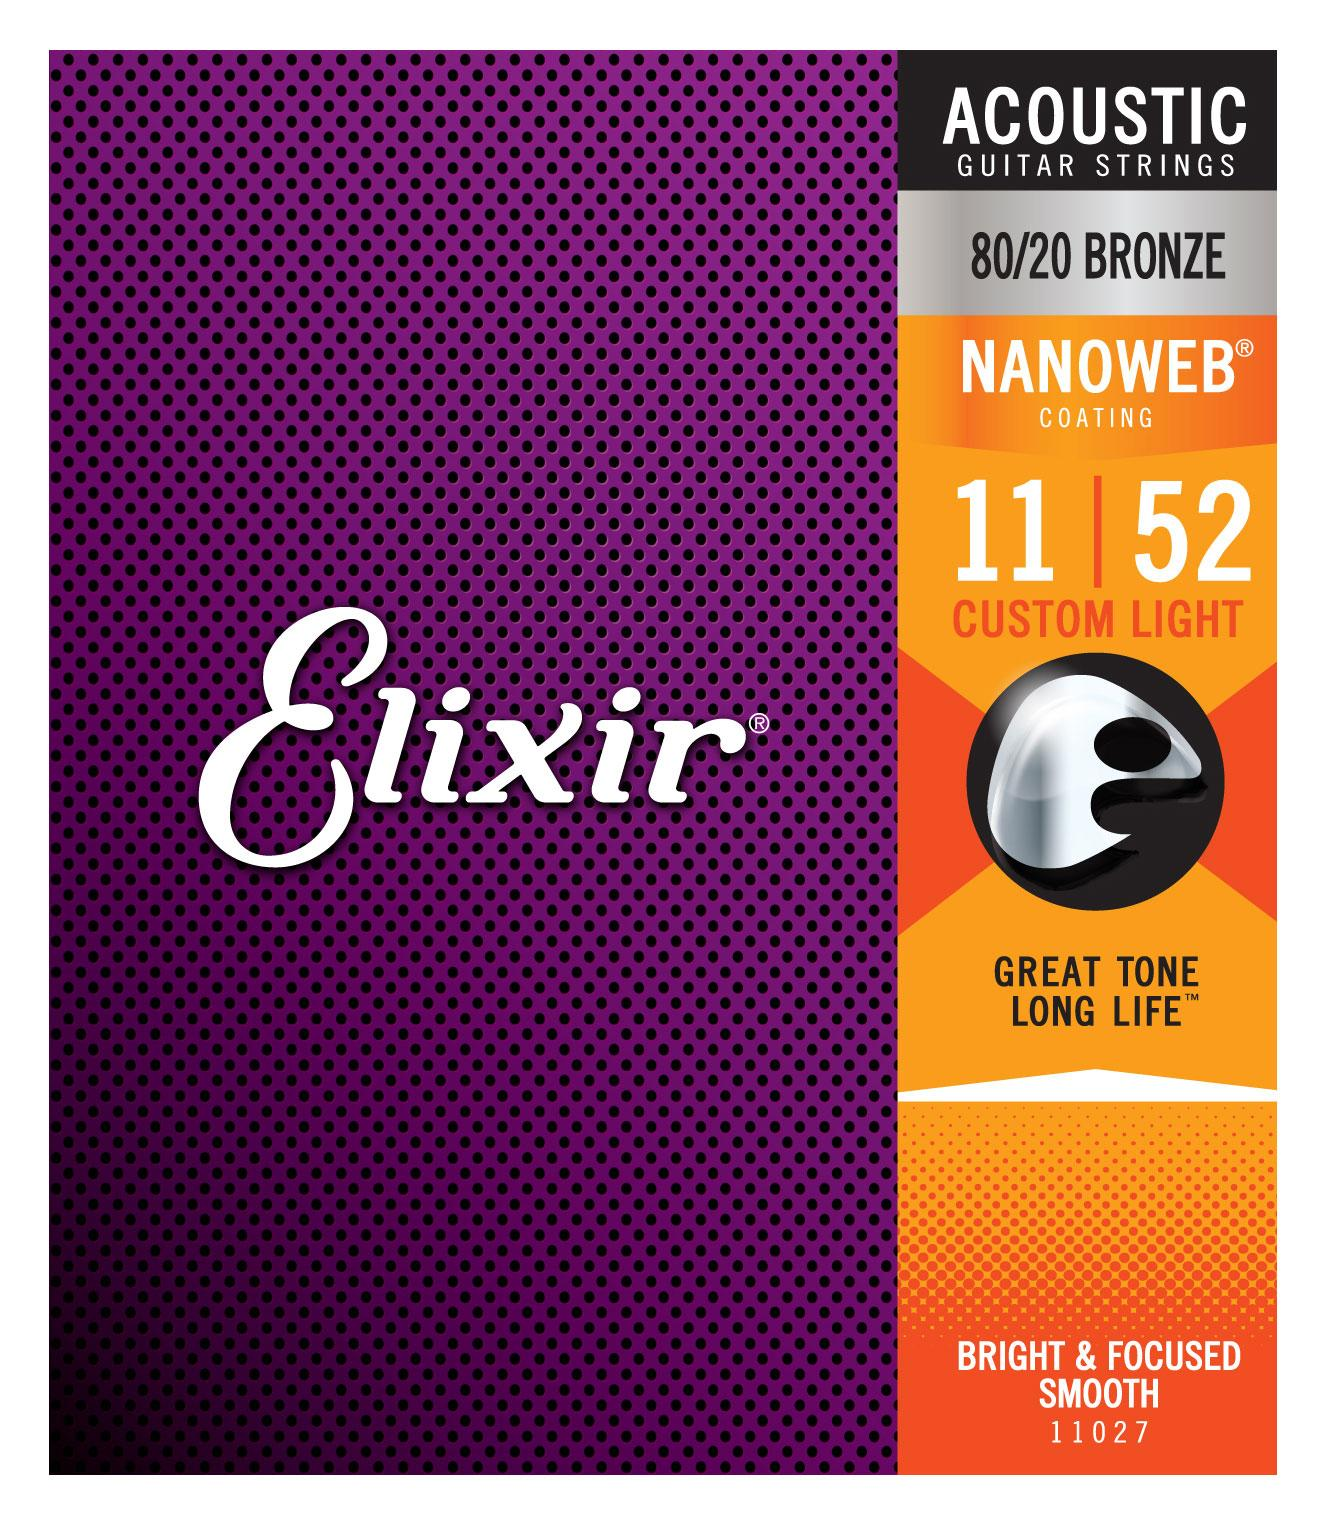 Elixir Akustik 80|20 Nanoweb Custom Light